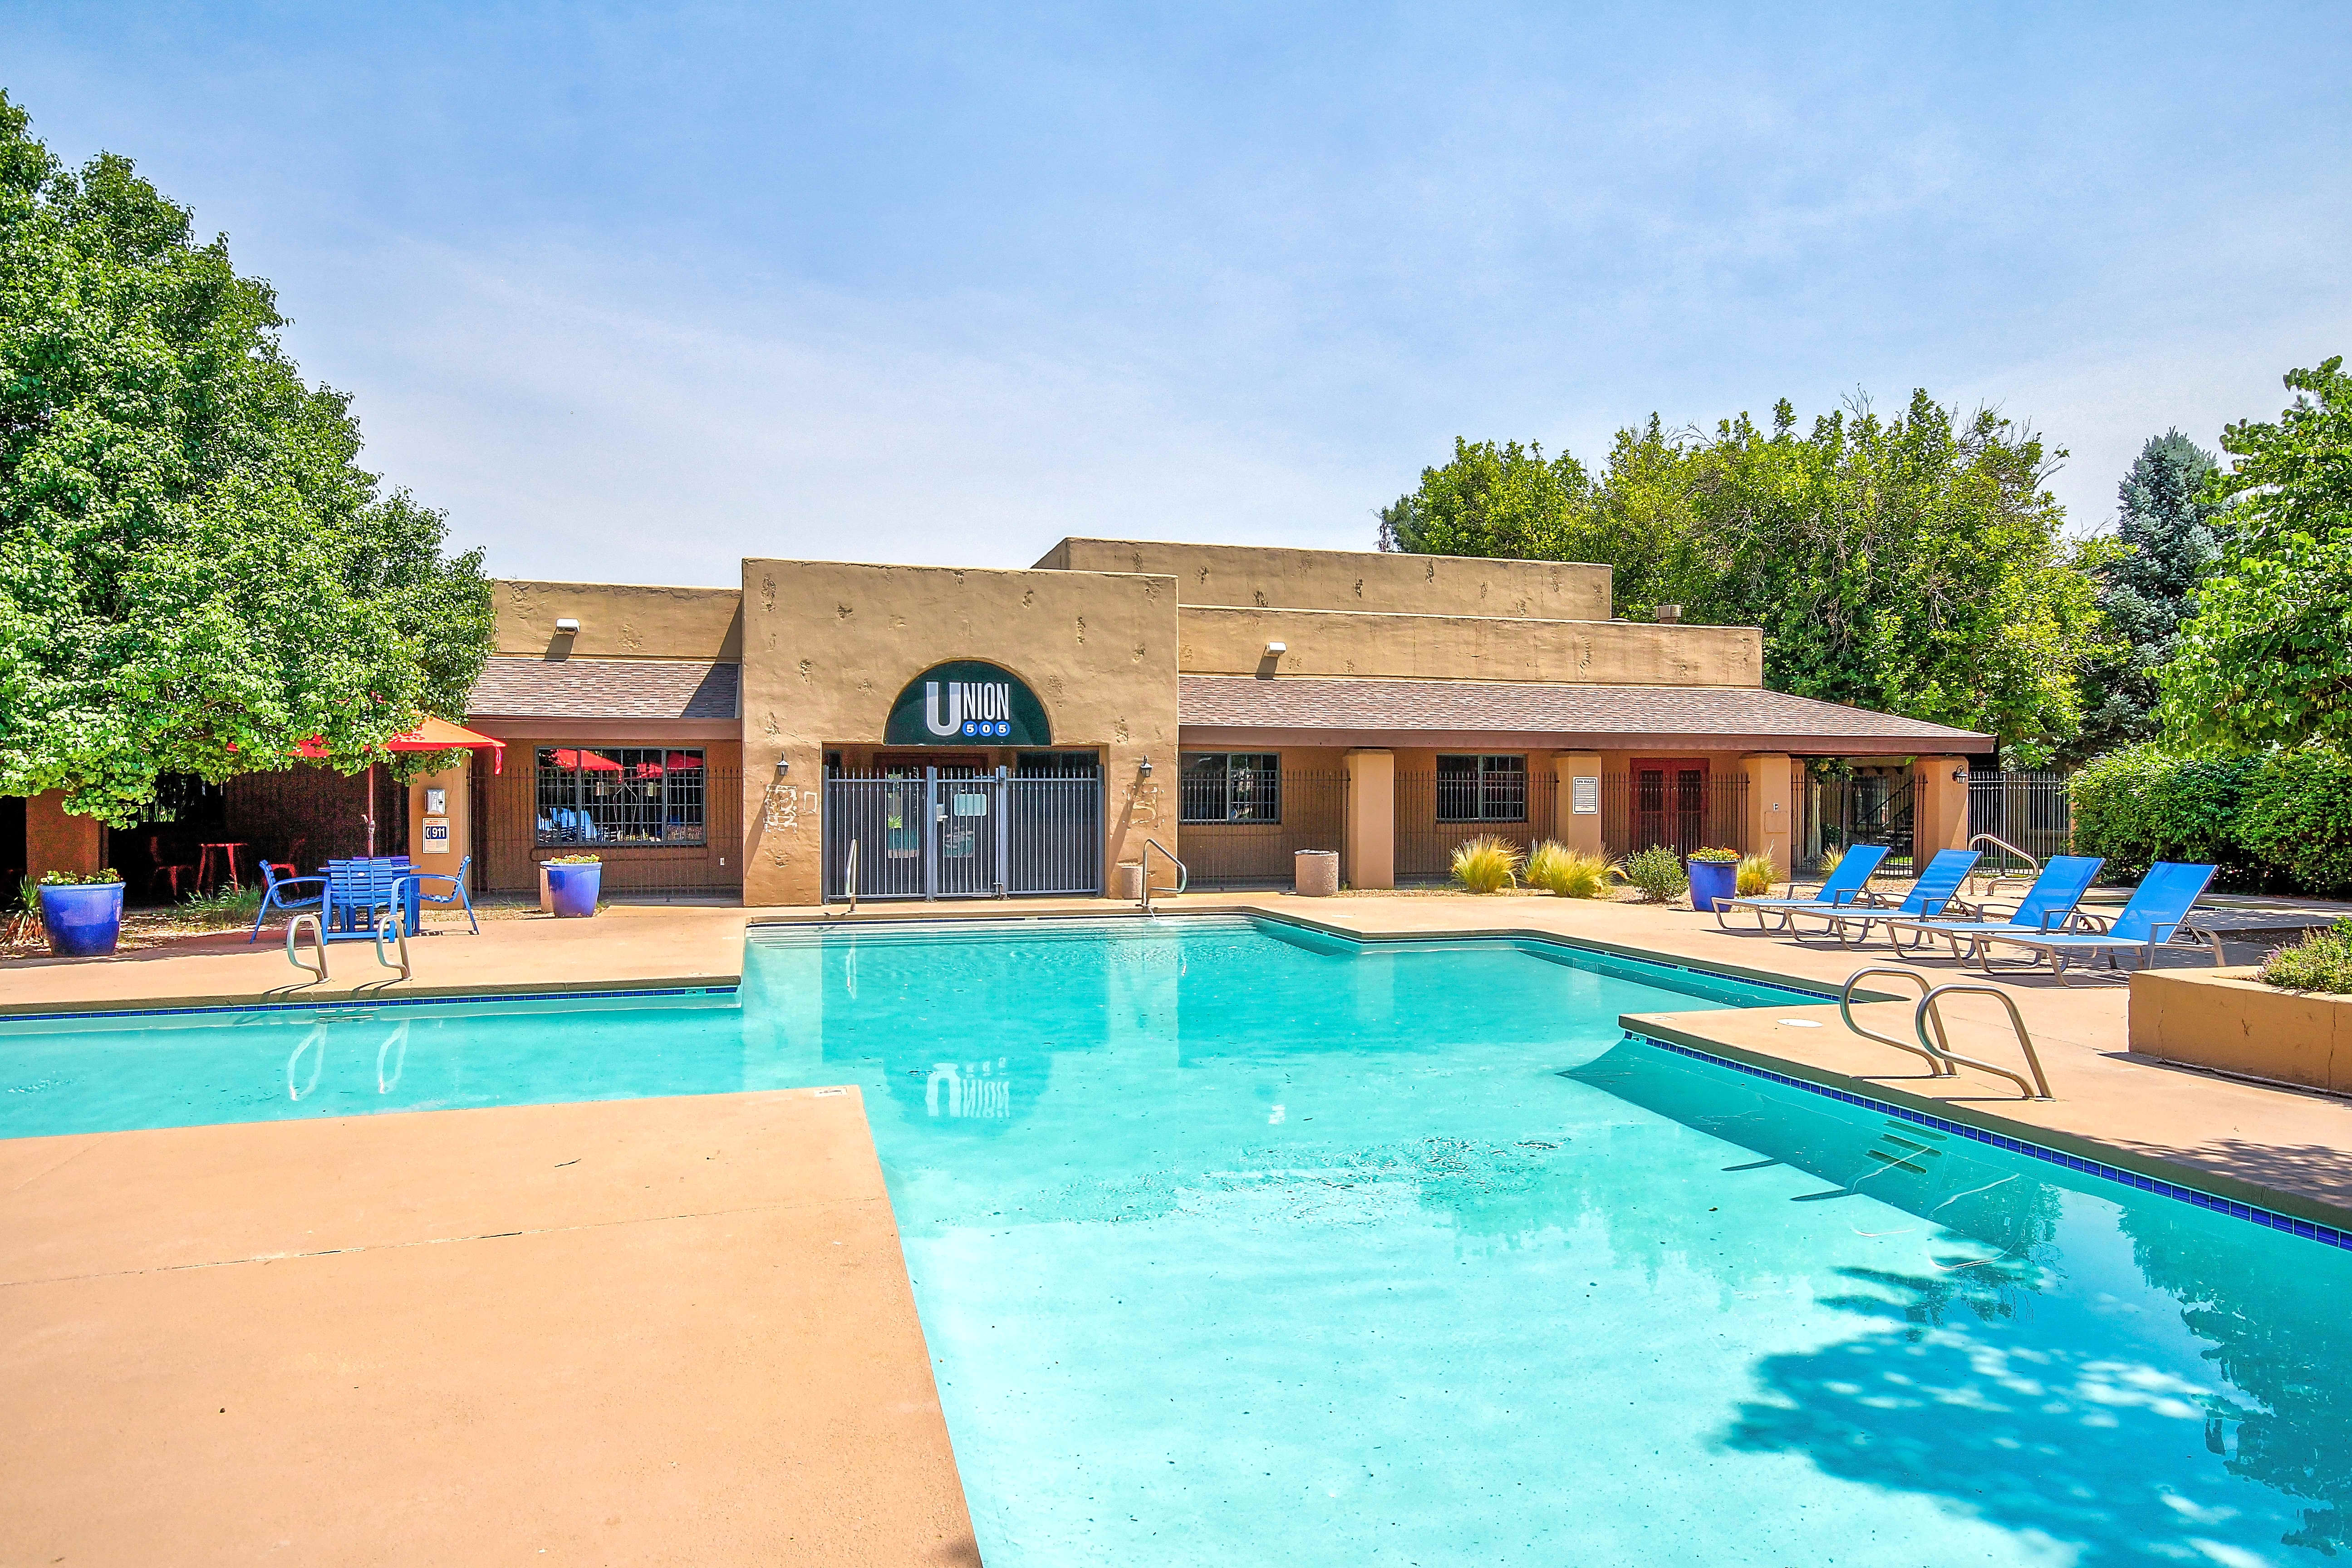 Apartments Near New Mexico Union 505 for University of New Mexico Students in Albuquerque, NM